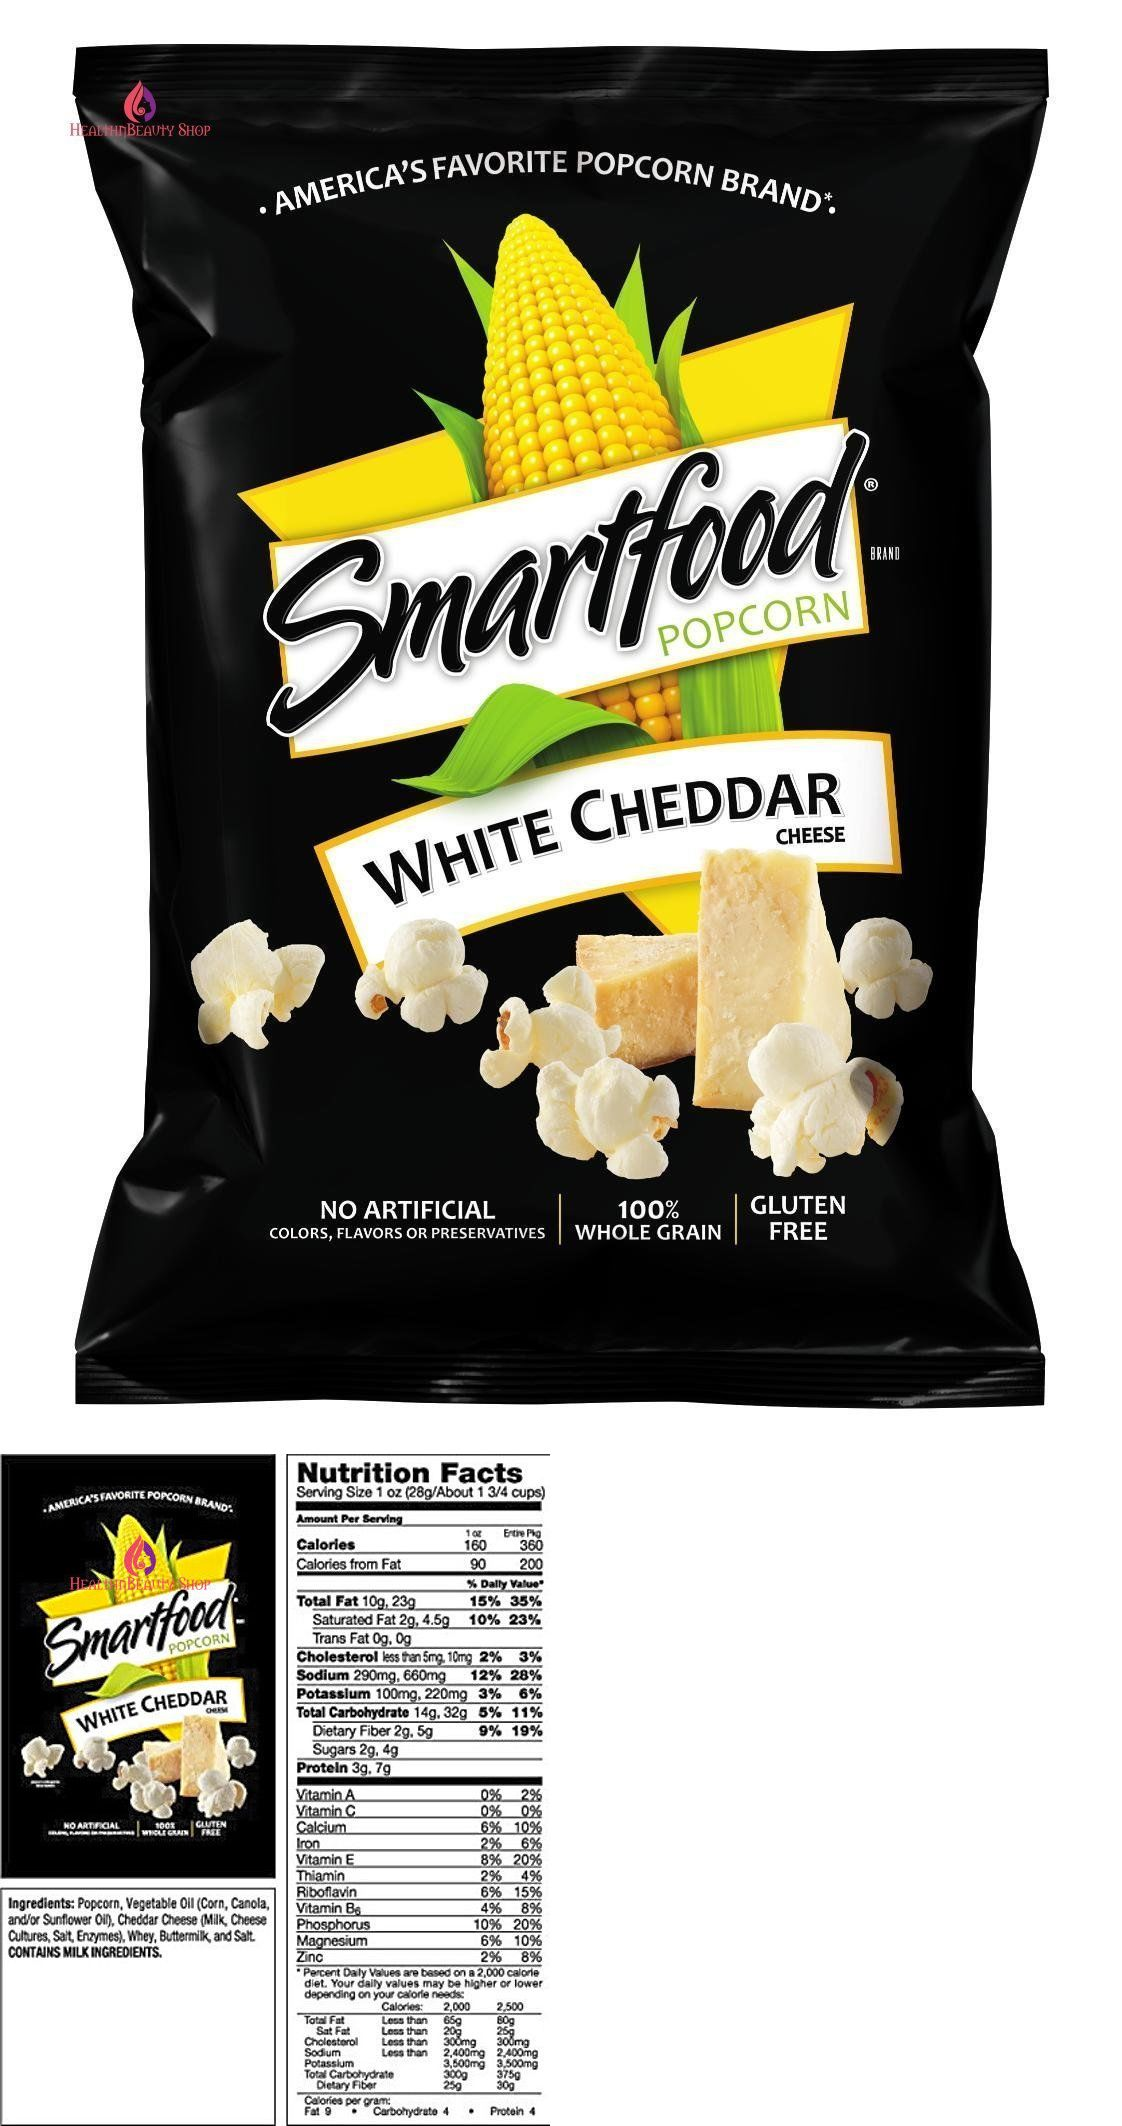 Popcorn 179181 Smartfood White Cheddar Flavored Popcorn 1 Ounce Pack Of 64 Buy It Now Only 46 86 O Cheddar Popcorn Cheese Popcorn White Cheddar Cheese